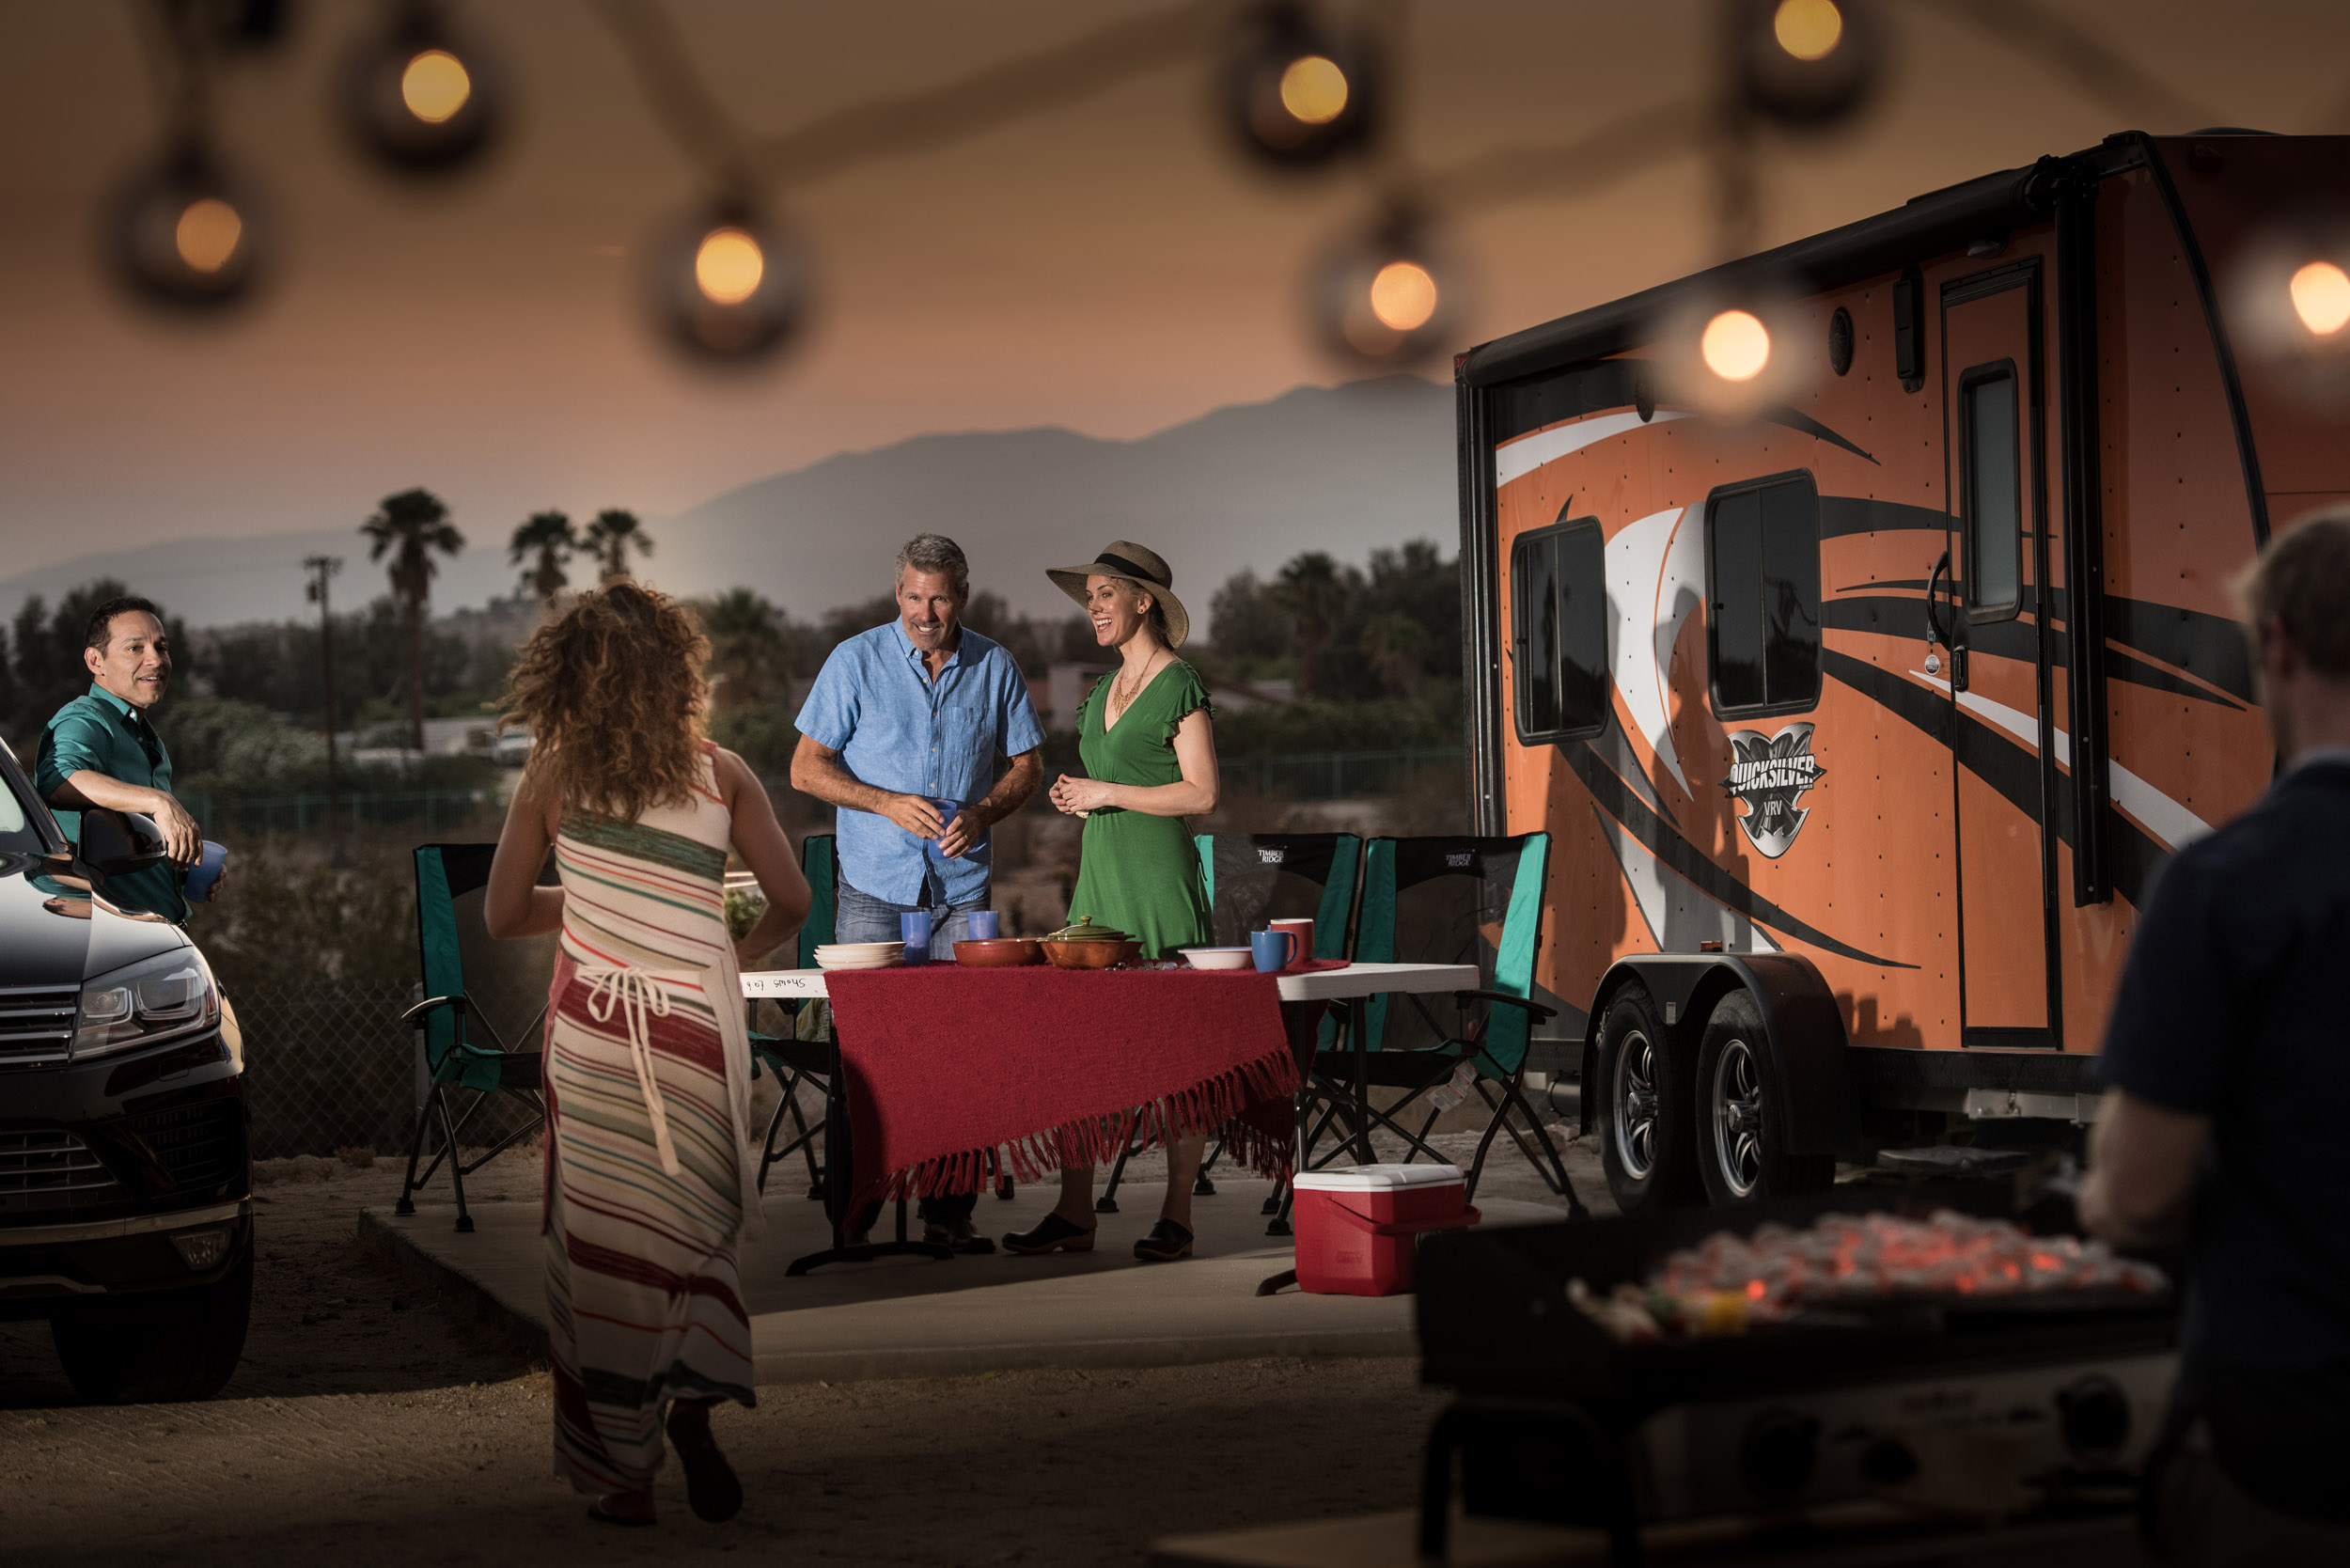 Bringing an RV? - We have RV sites, too! Enjoy the best amenities in the desert from the comfort of your own vehicle.CLICK HERE FOR MORE INFORMATION